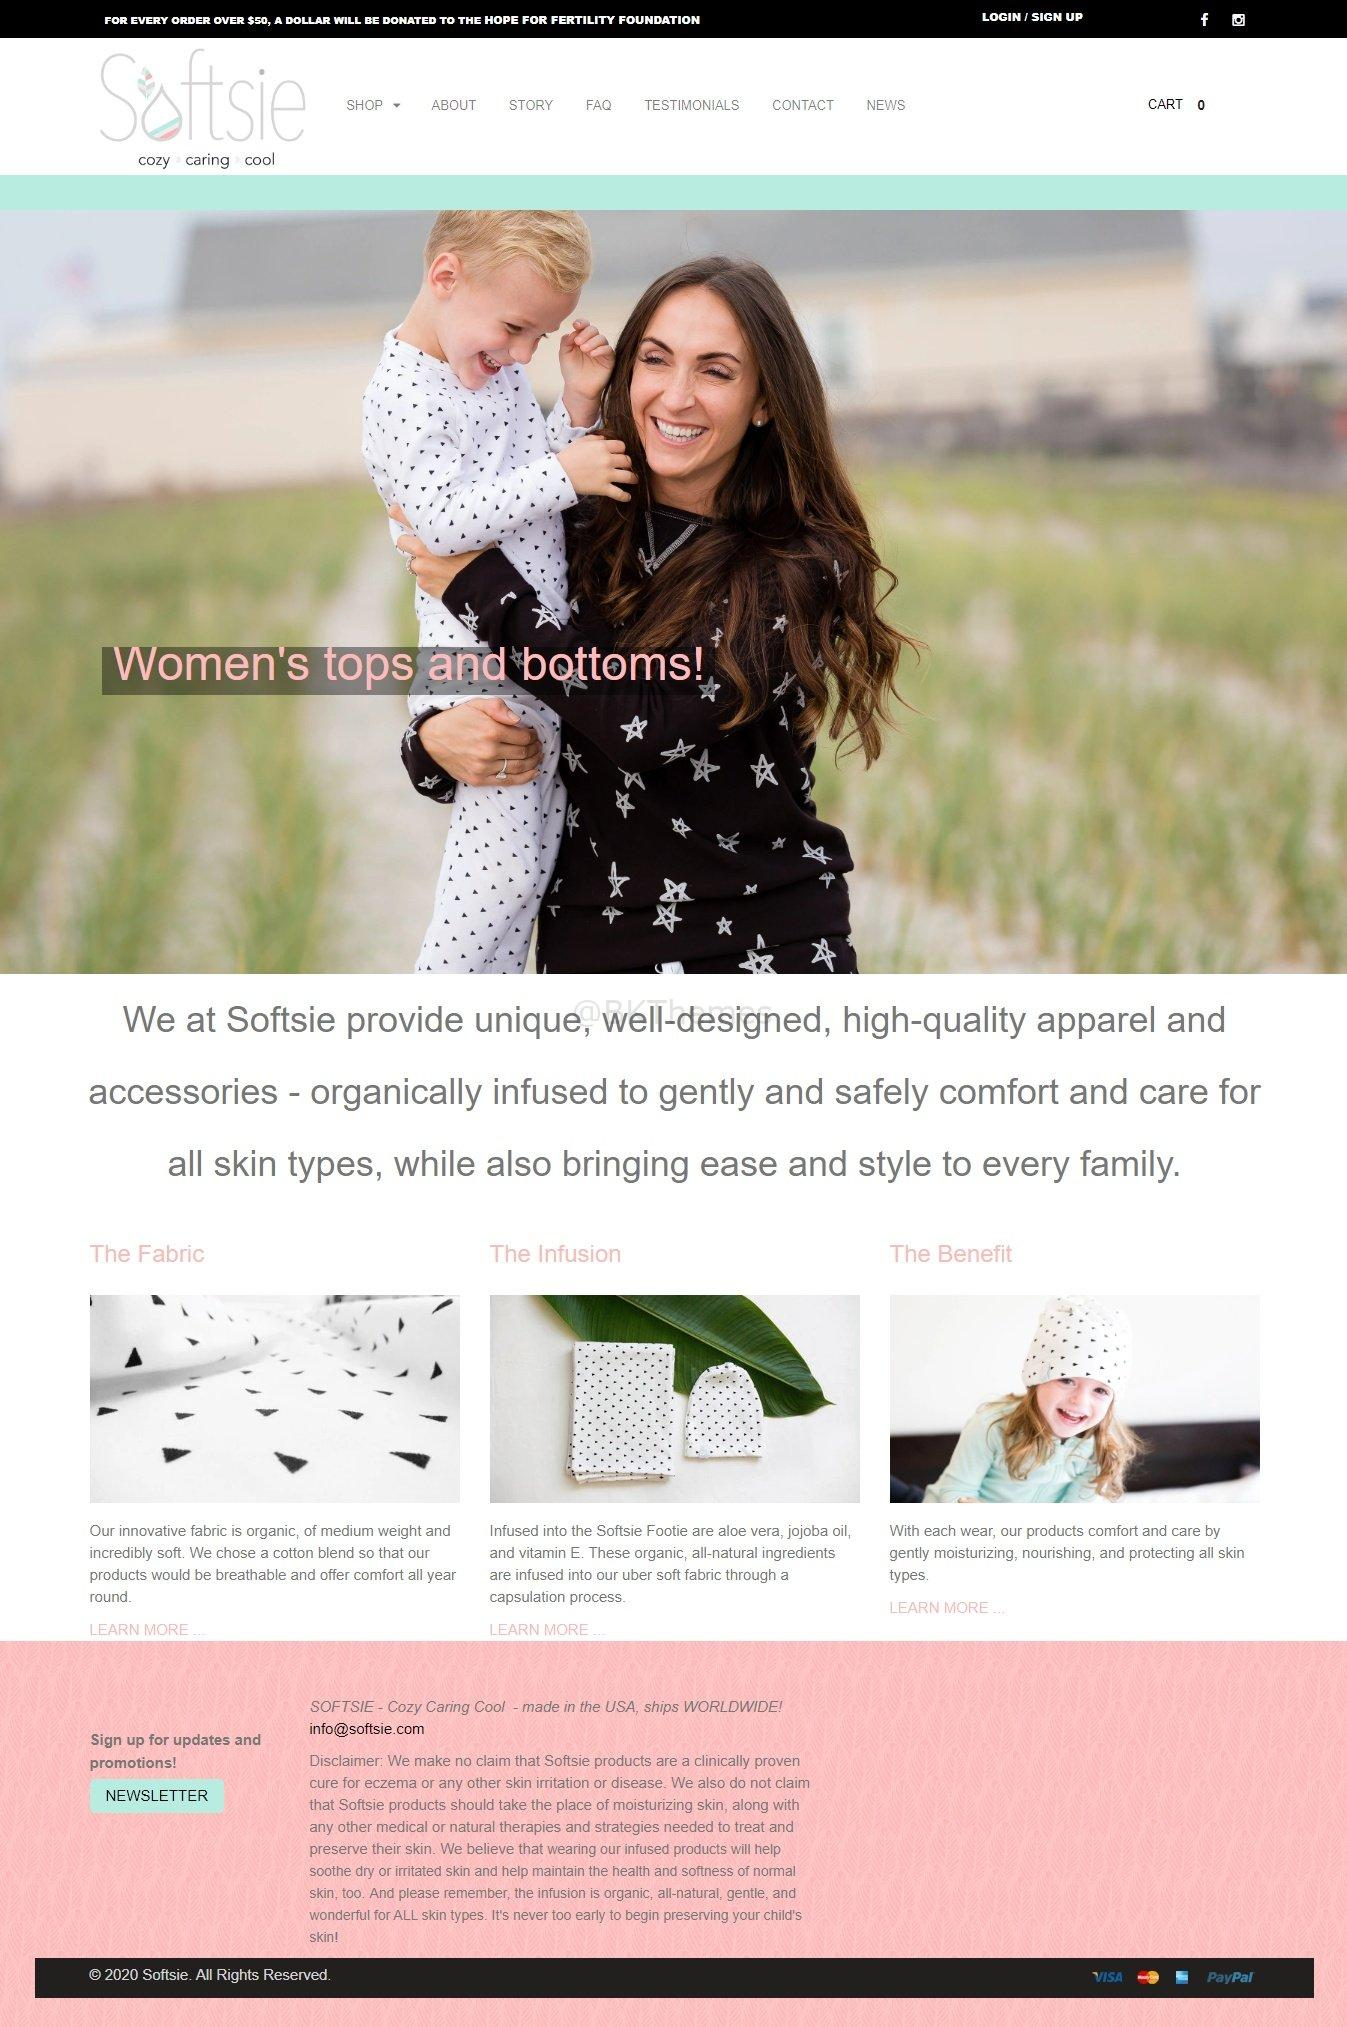 Softsie Shopify website